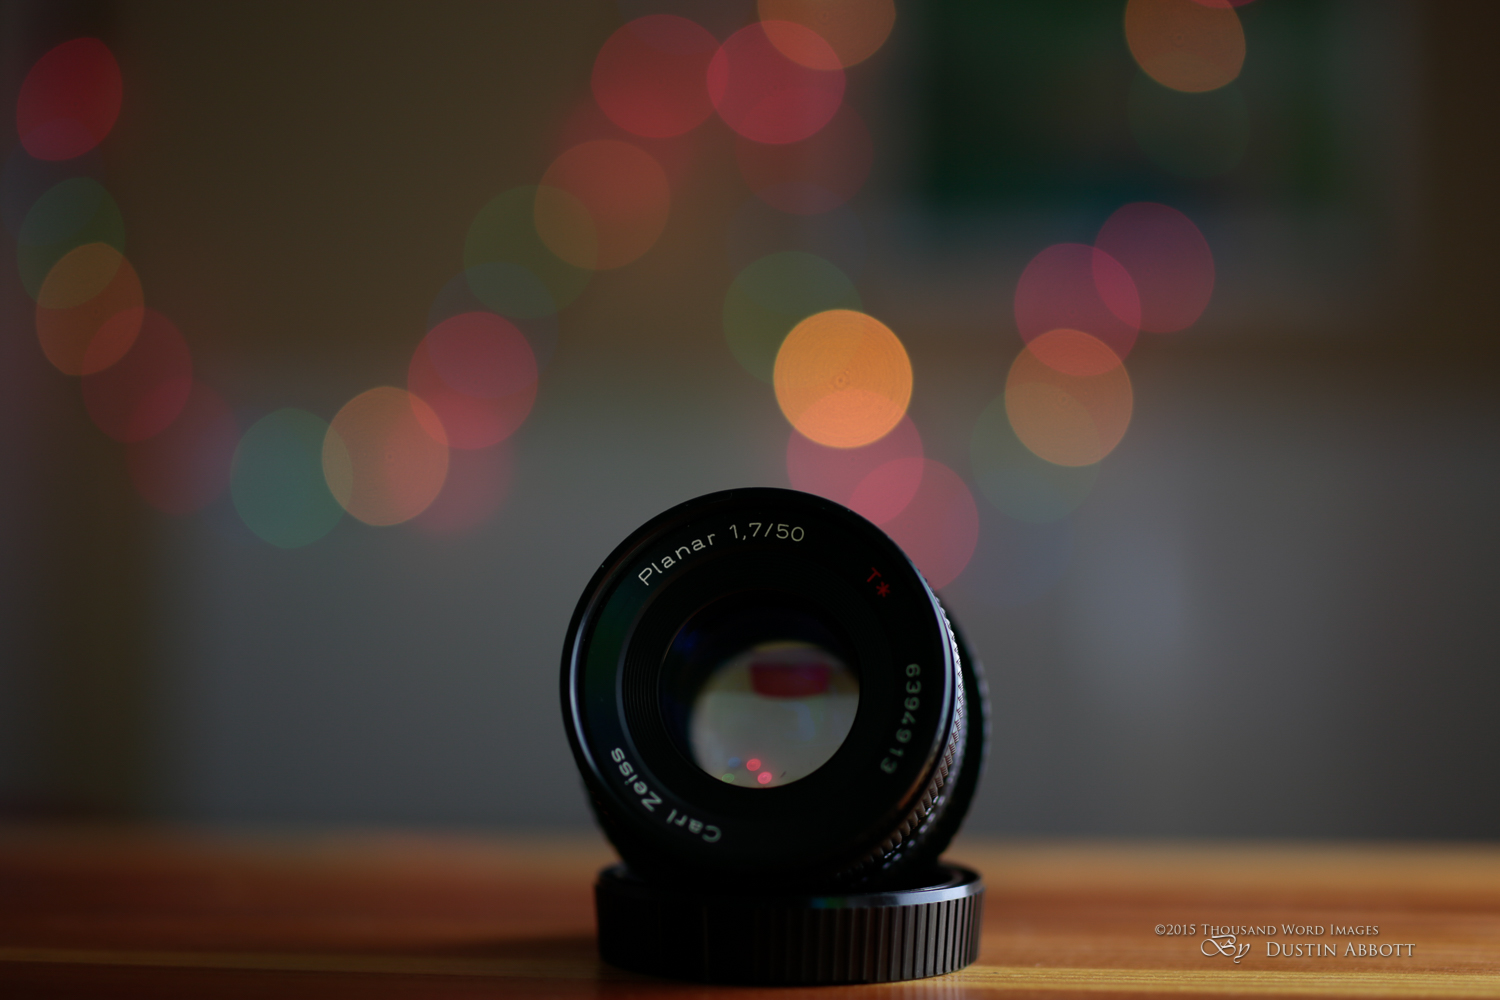 45mm Zeiss Bokeh